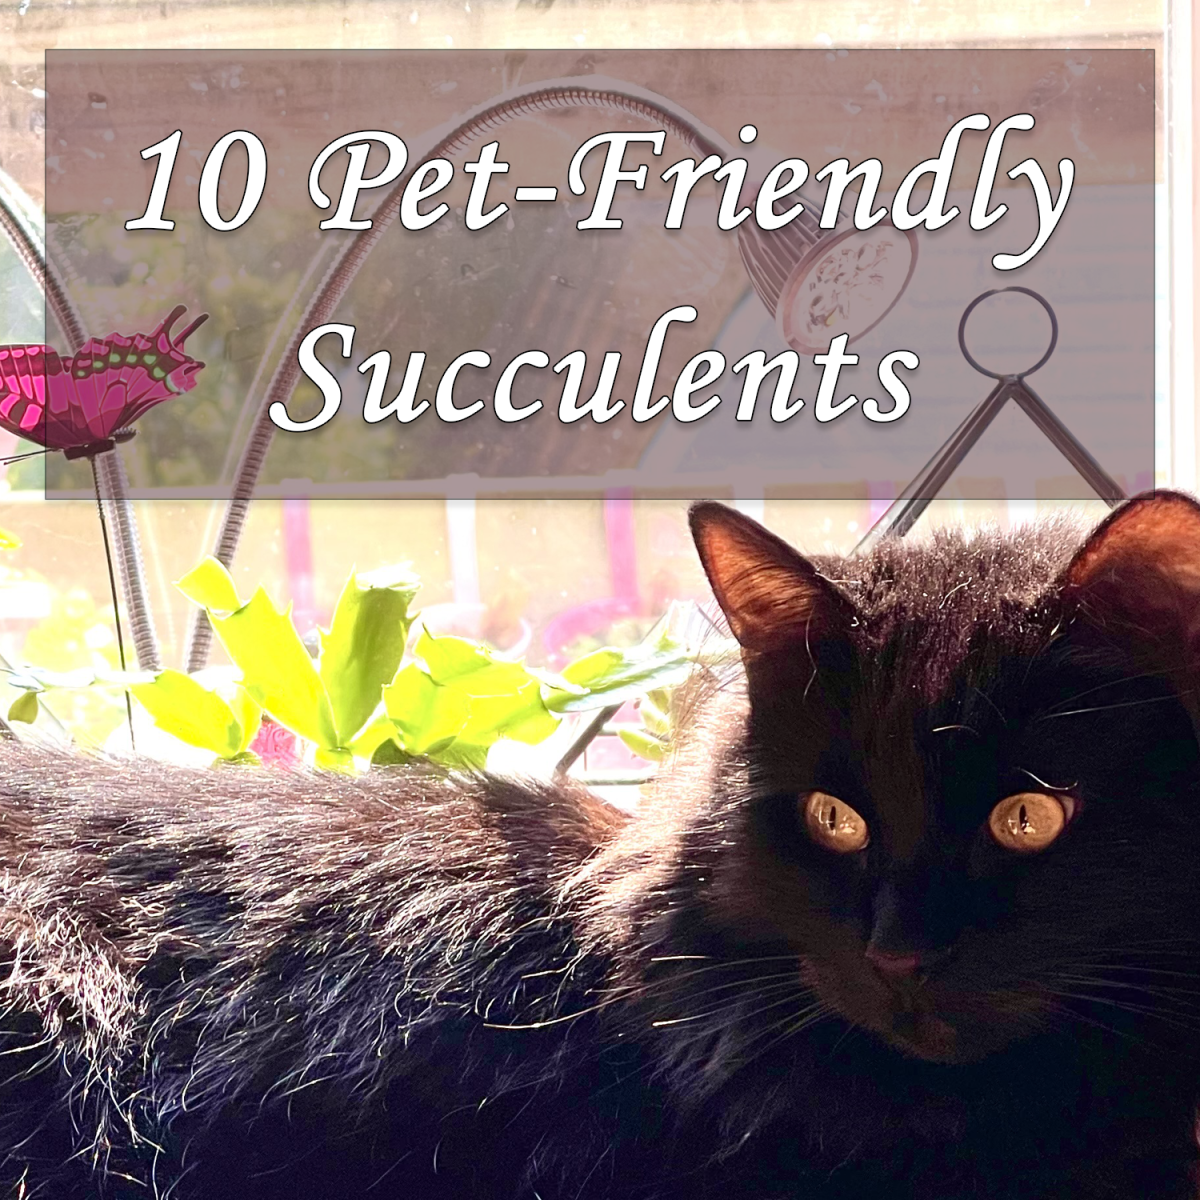 10 Pet-Friendly Succulents that are Safe for Cats and Dogs